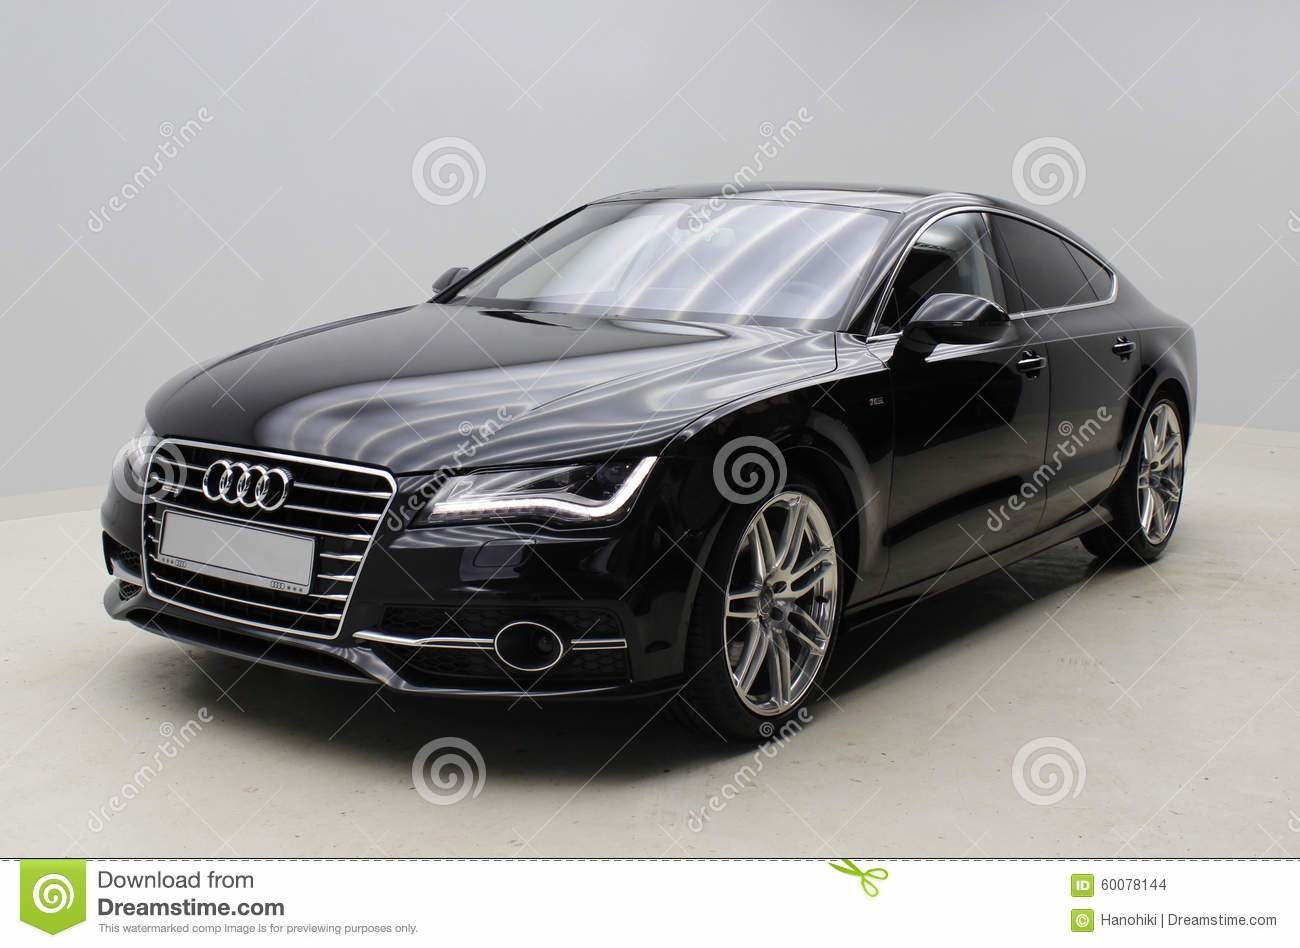 Latest Black Audi A7 On Grey Background Editorial Stock Image Free Download